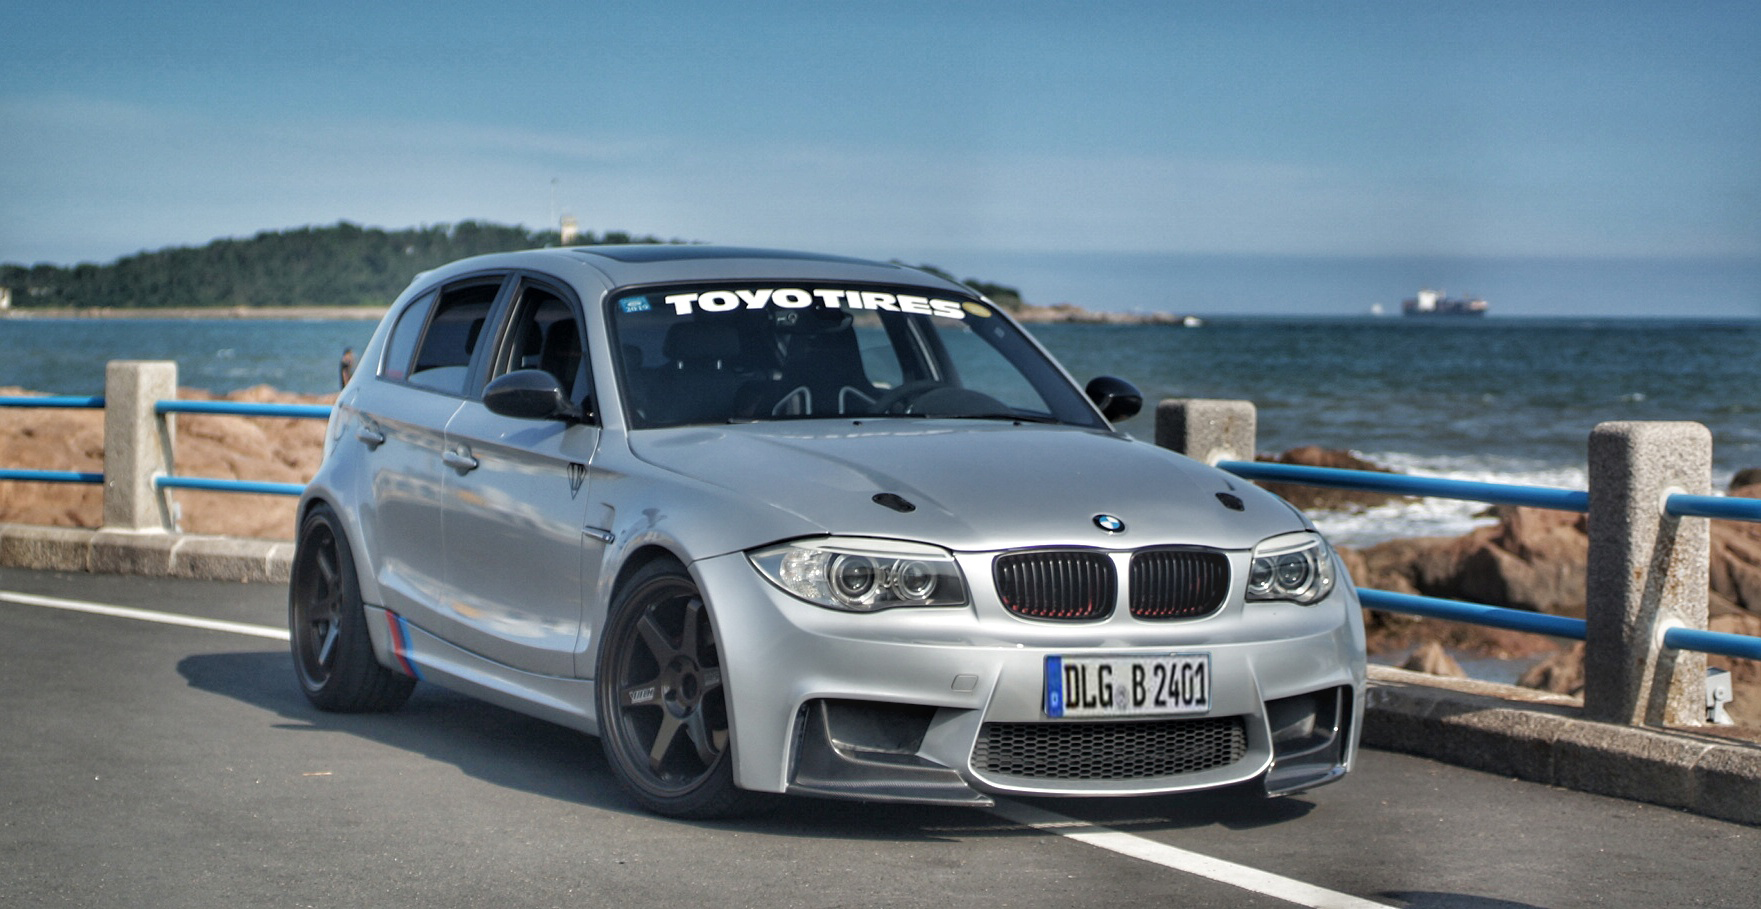 E87 130i 1m Widebody Project From China